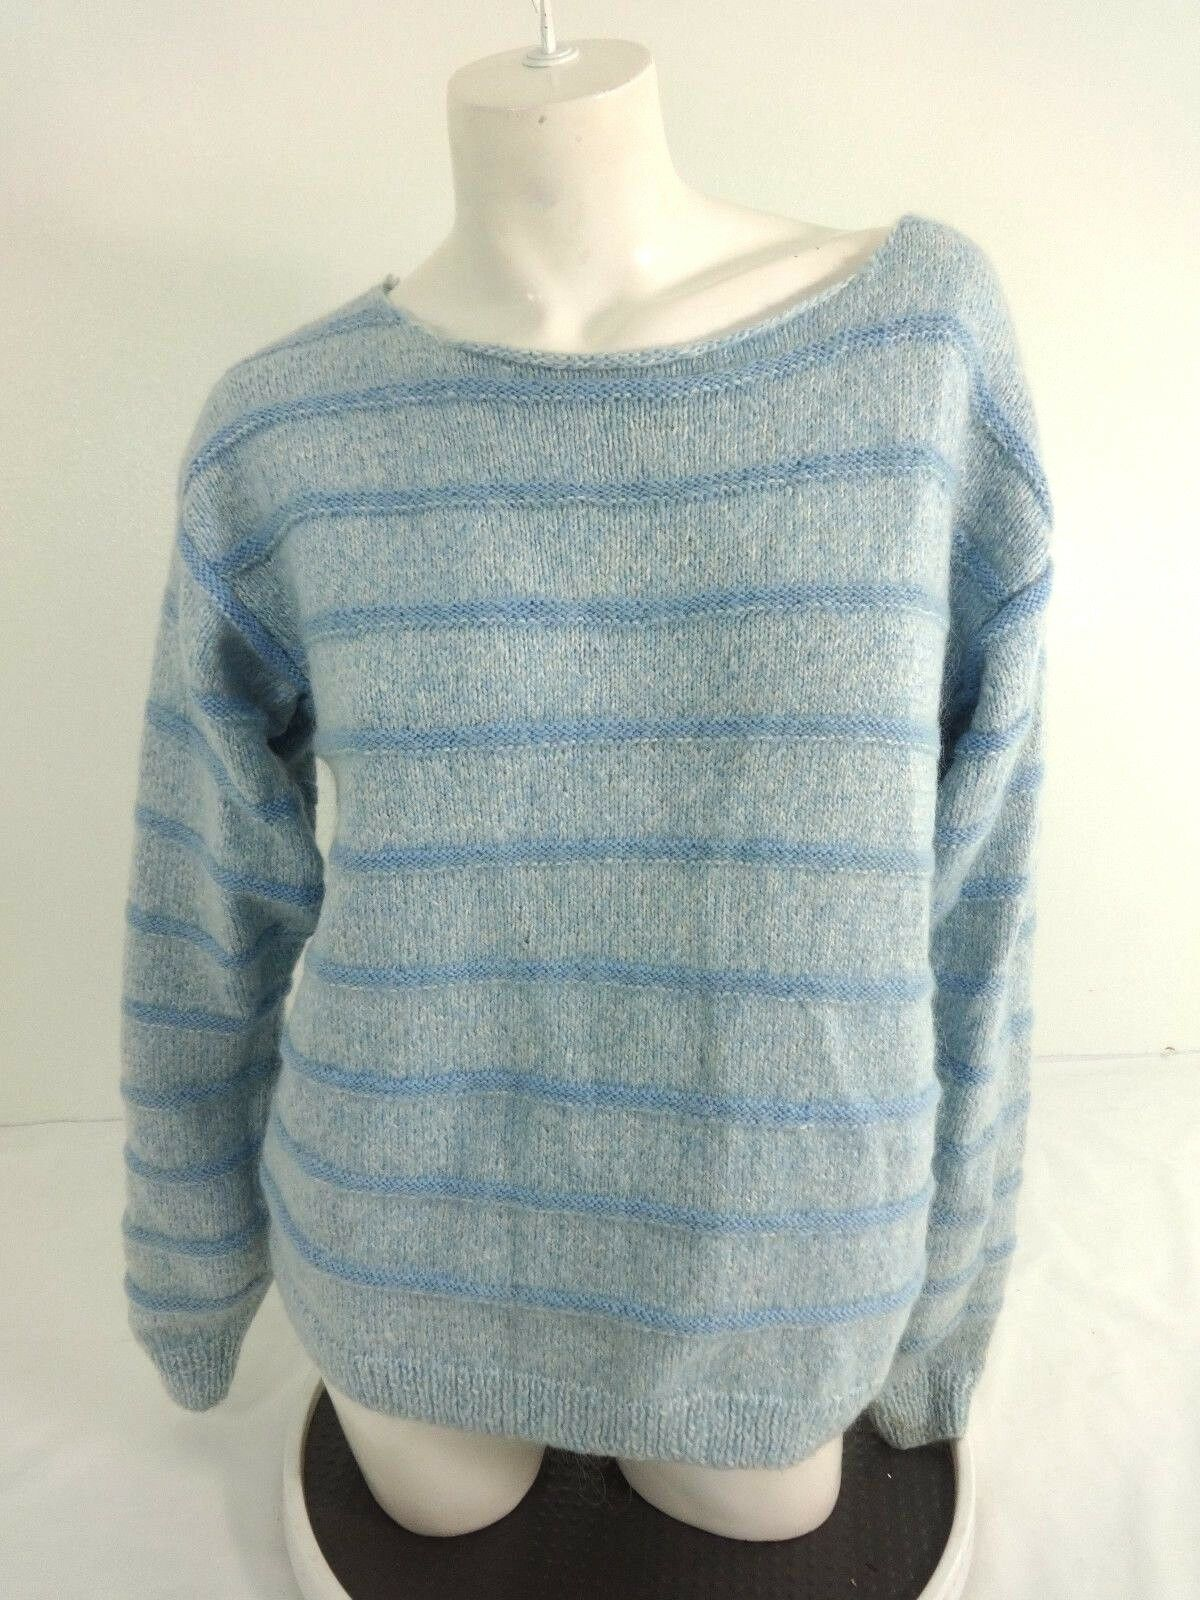 Details about NWOT WOMENS LIGHT BLUE WOOL BLEND KNIT SWEATER SIZE LARGE 8414fc71f8